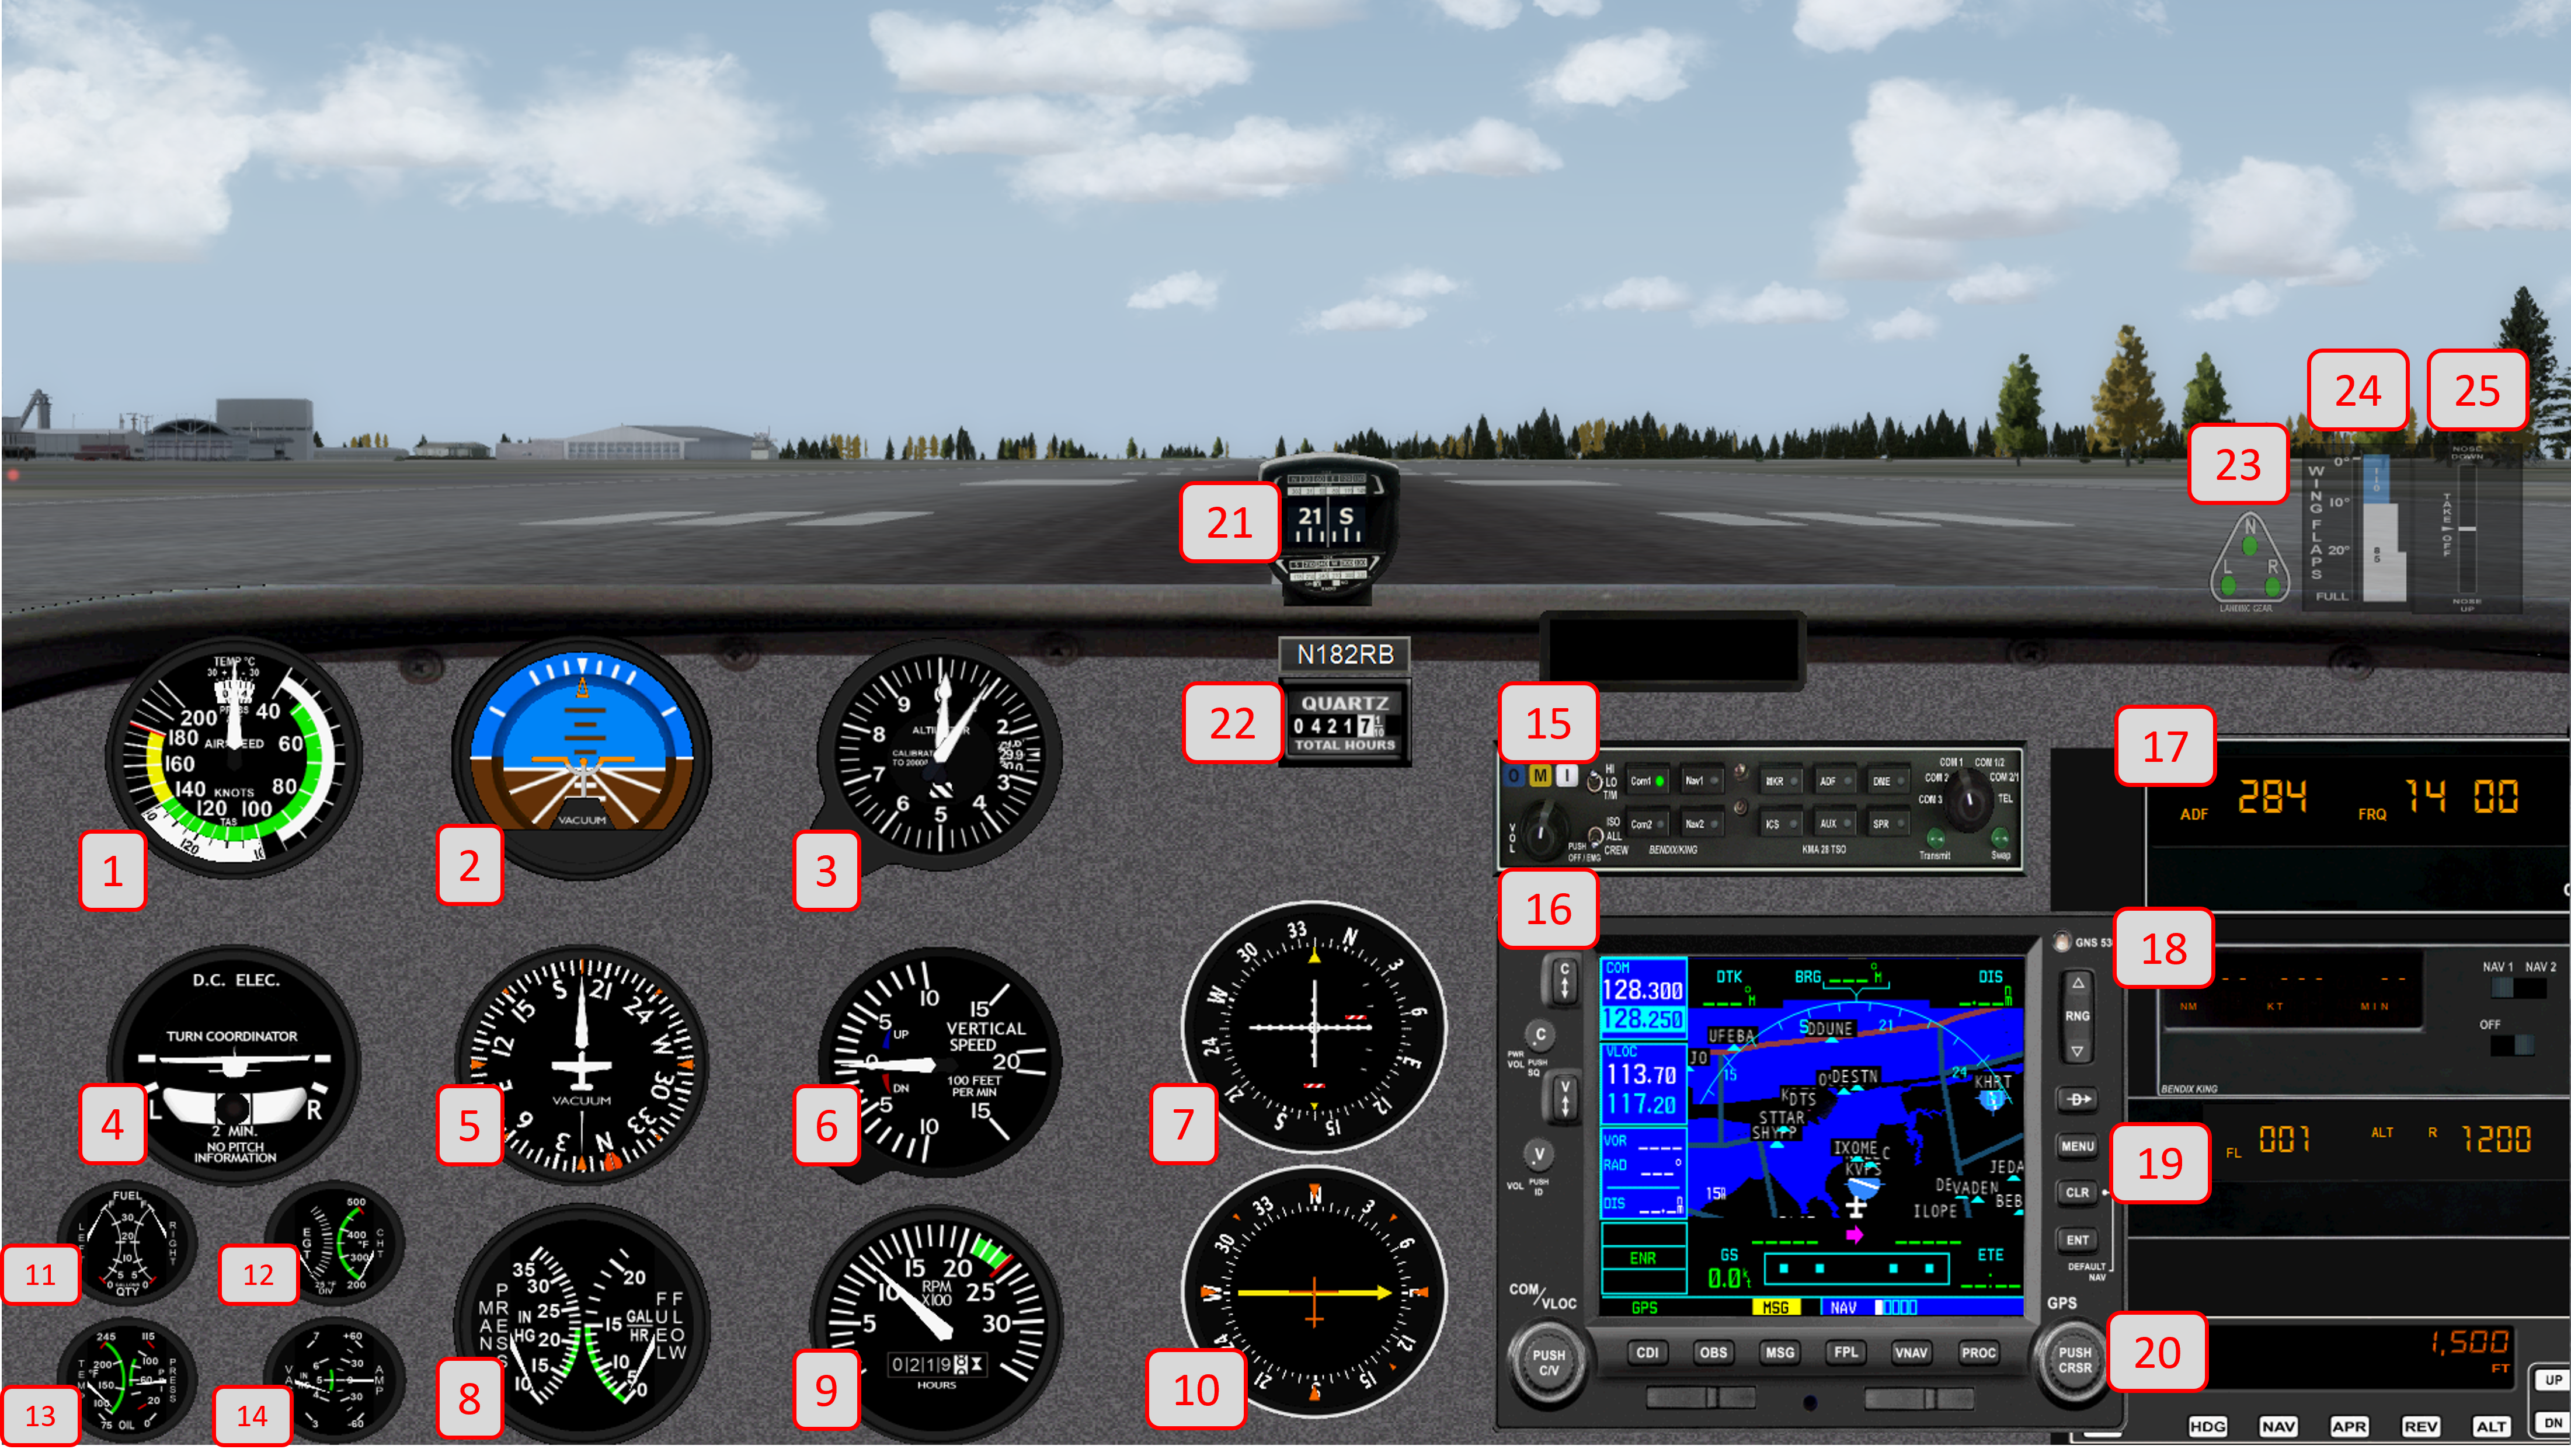 Redbird 6-pack avionics configuration, with number labels on each gauge